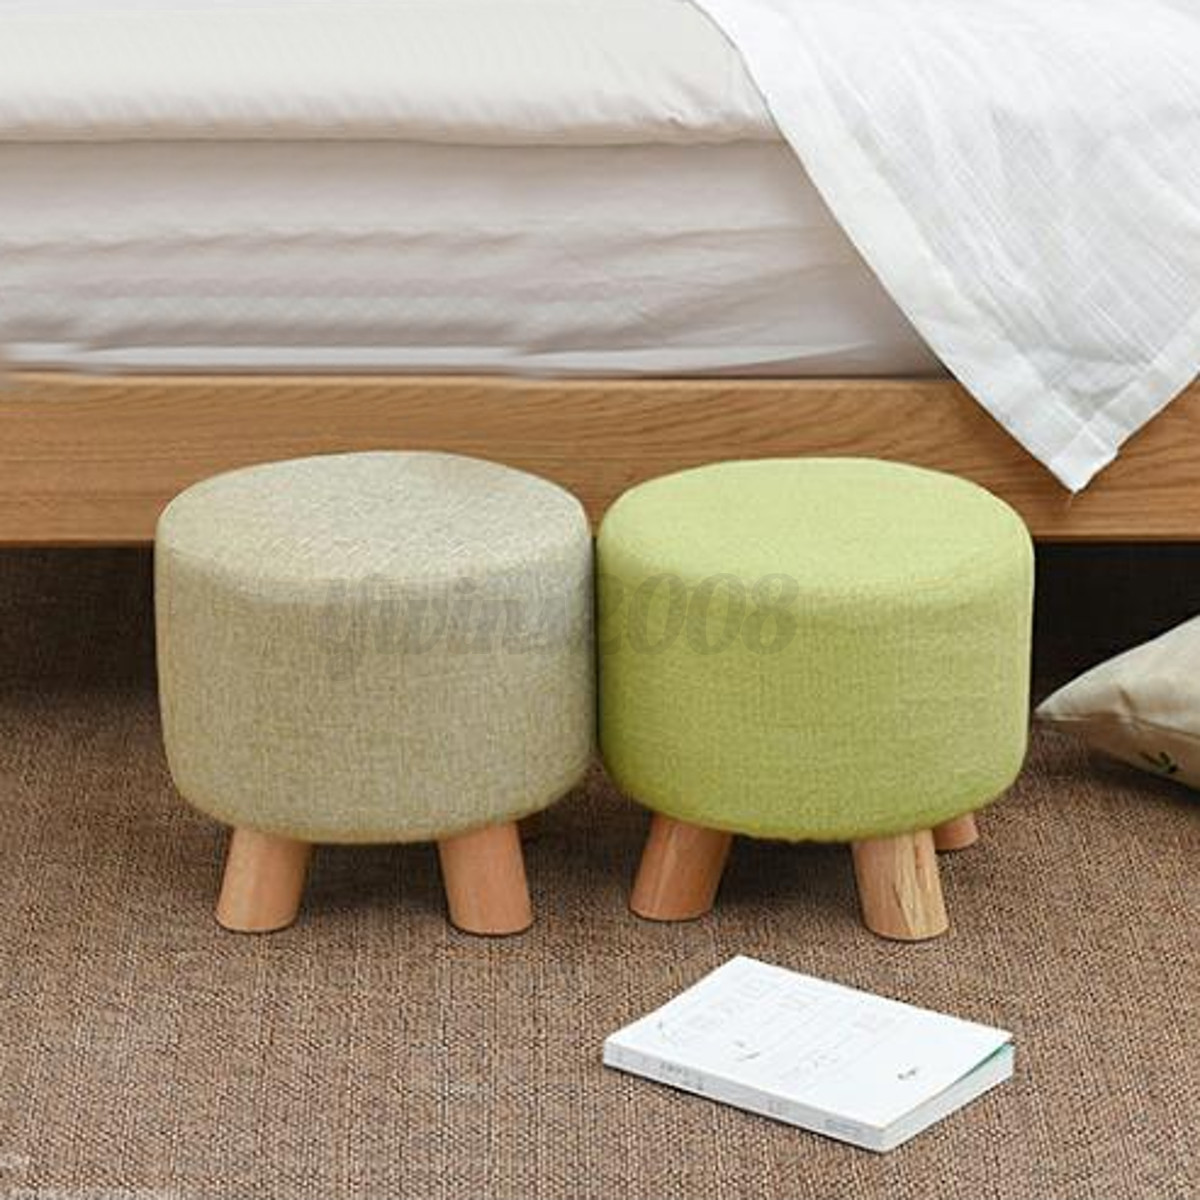 Prime Details About Footstool Small Round Wood Pouffe Chair Ottoman Foot Stool Foot Rest Padded Caraccident5 Cool Chair Designs And Ideas Caraccident5Info